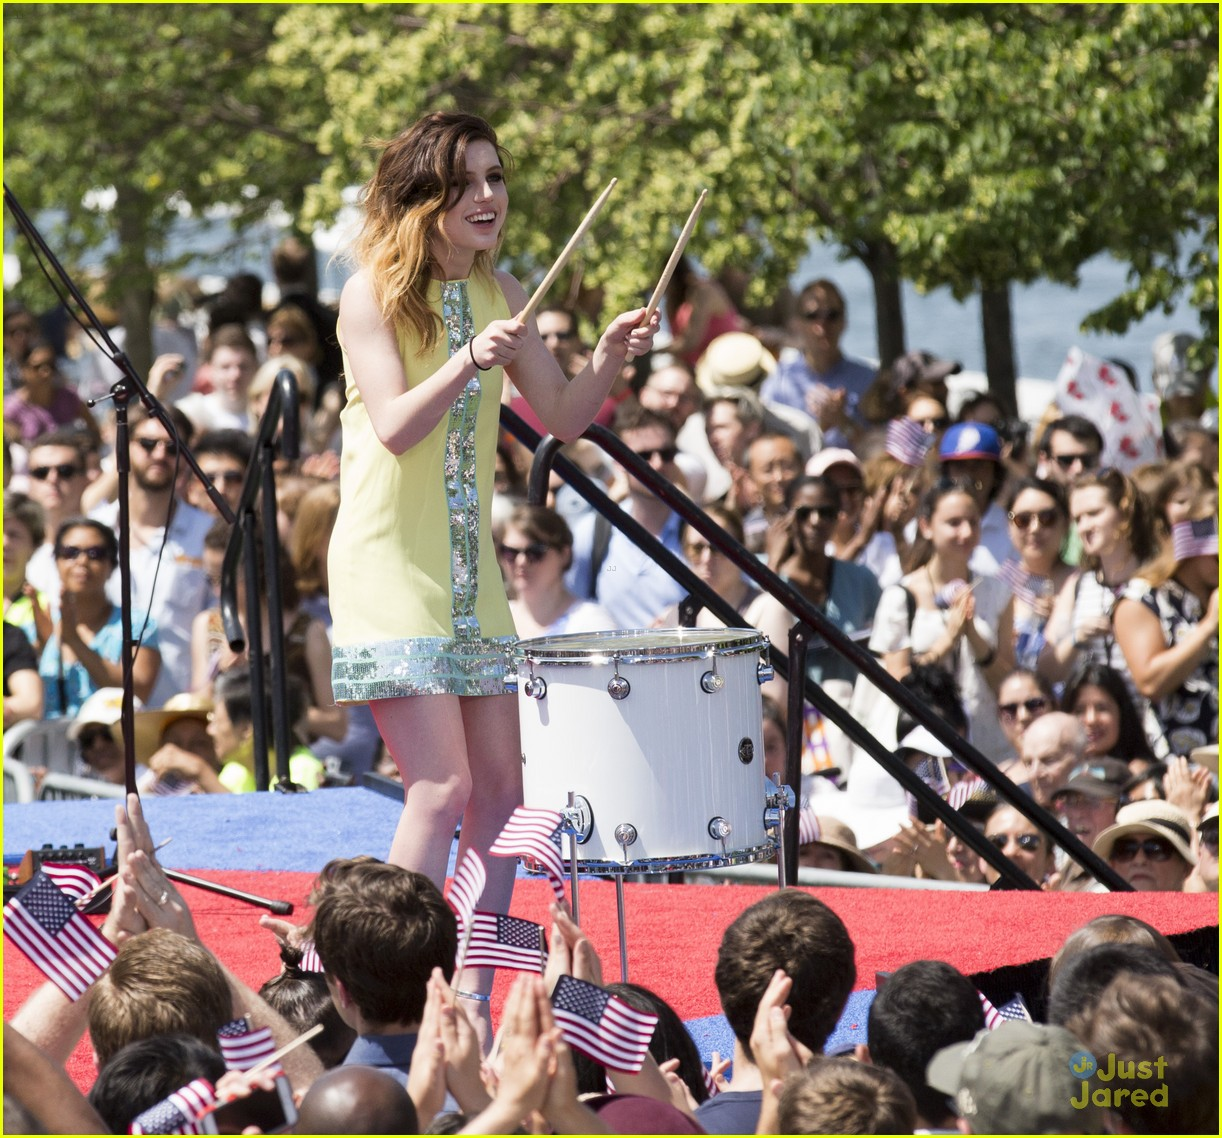 echosmith-hilary-clinton-rally-kickoff-05justjared.jpg